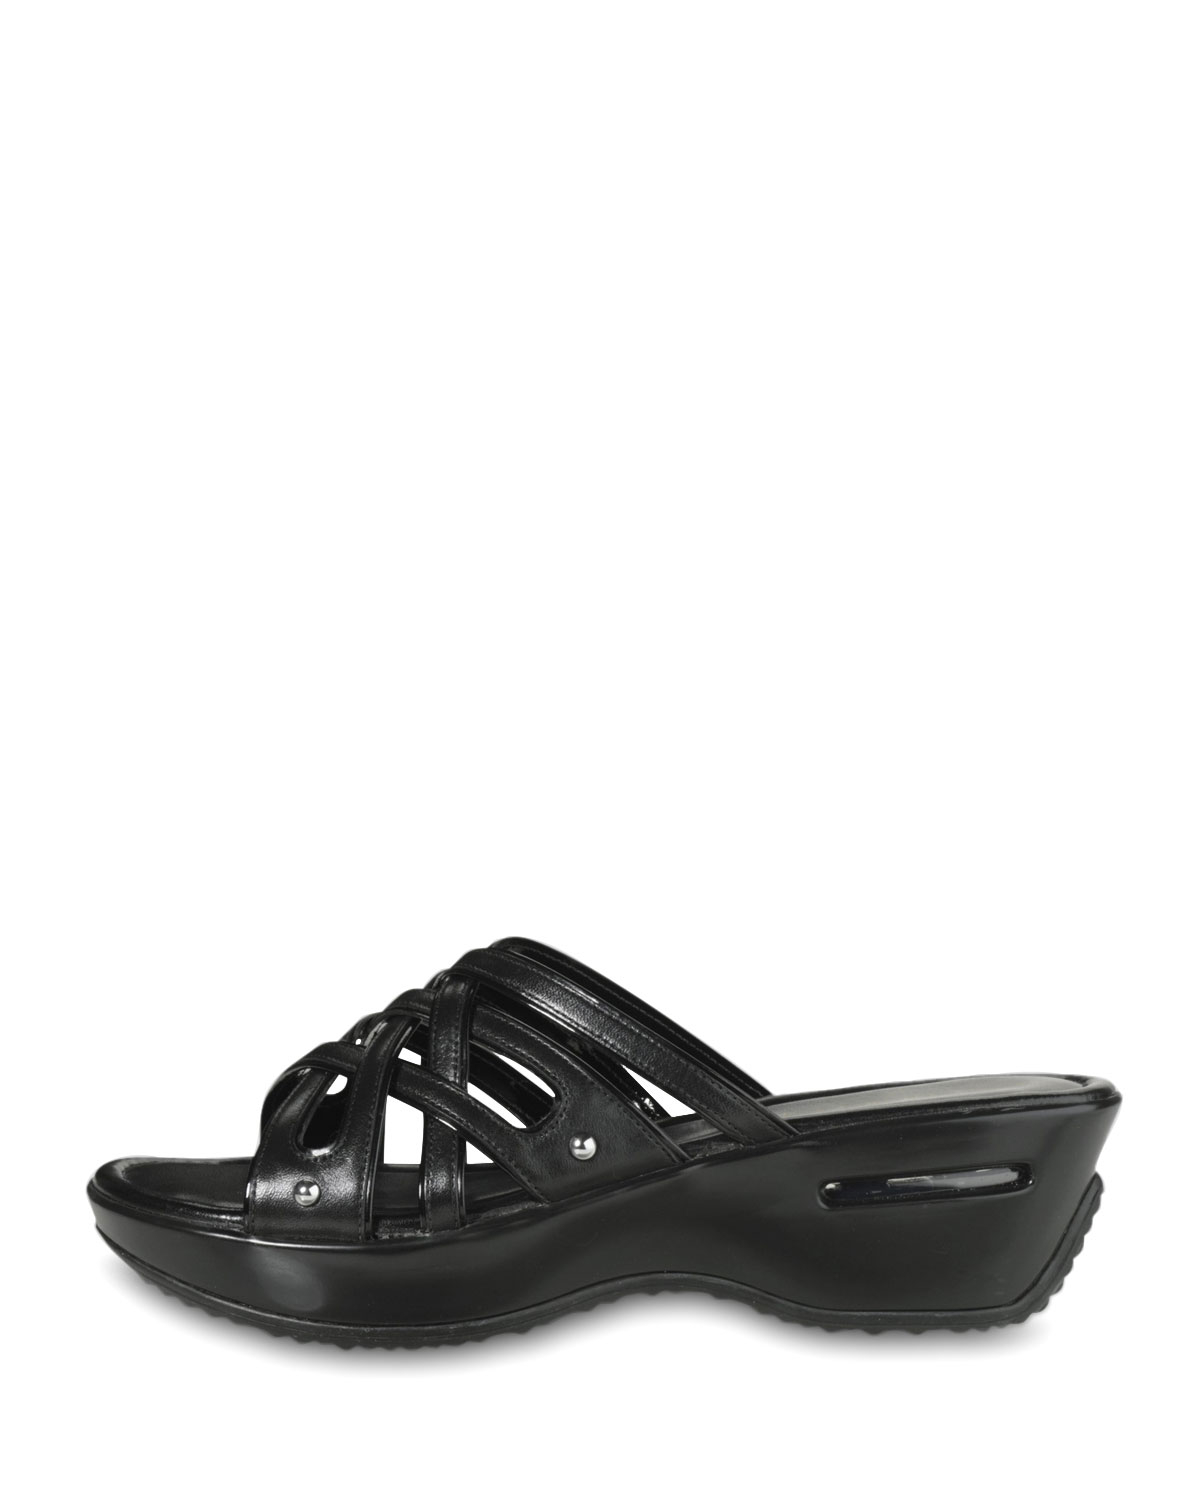 59cb9318a1f Lyst - Cole Haan Air Ezra Strappy Wedge in Black